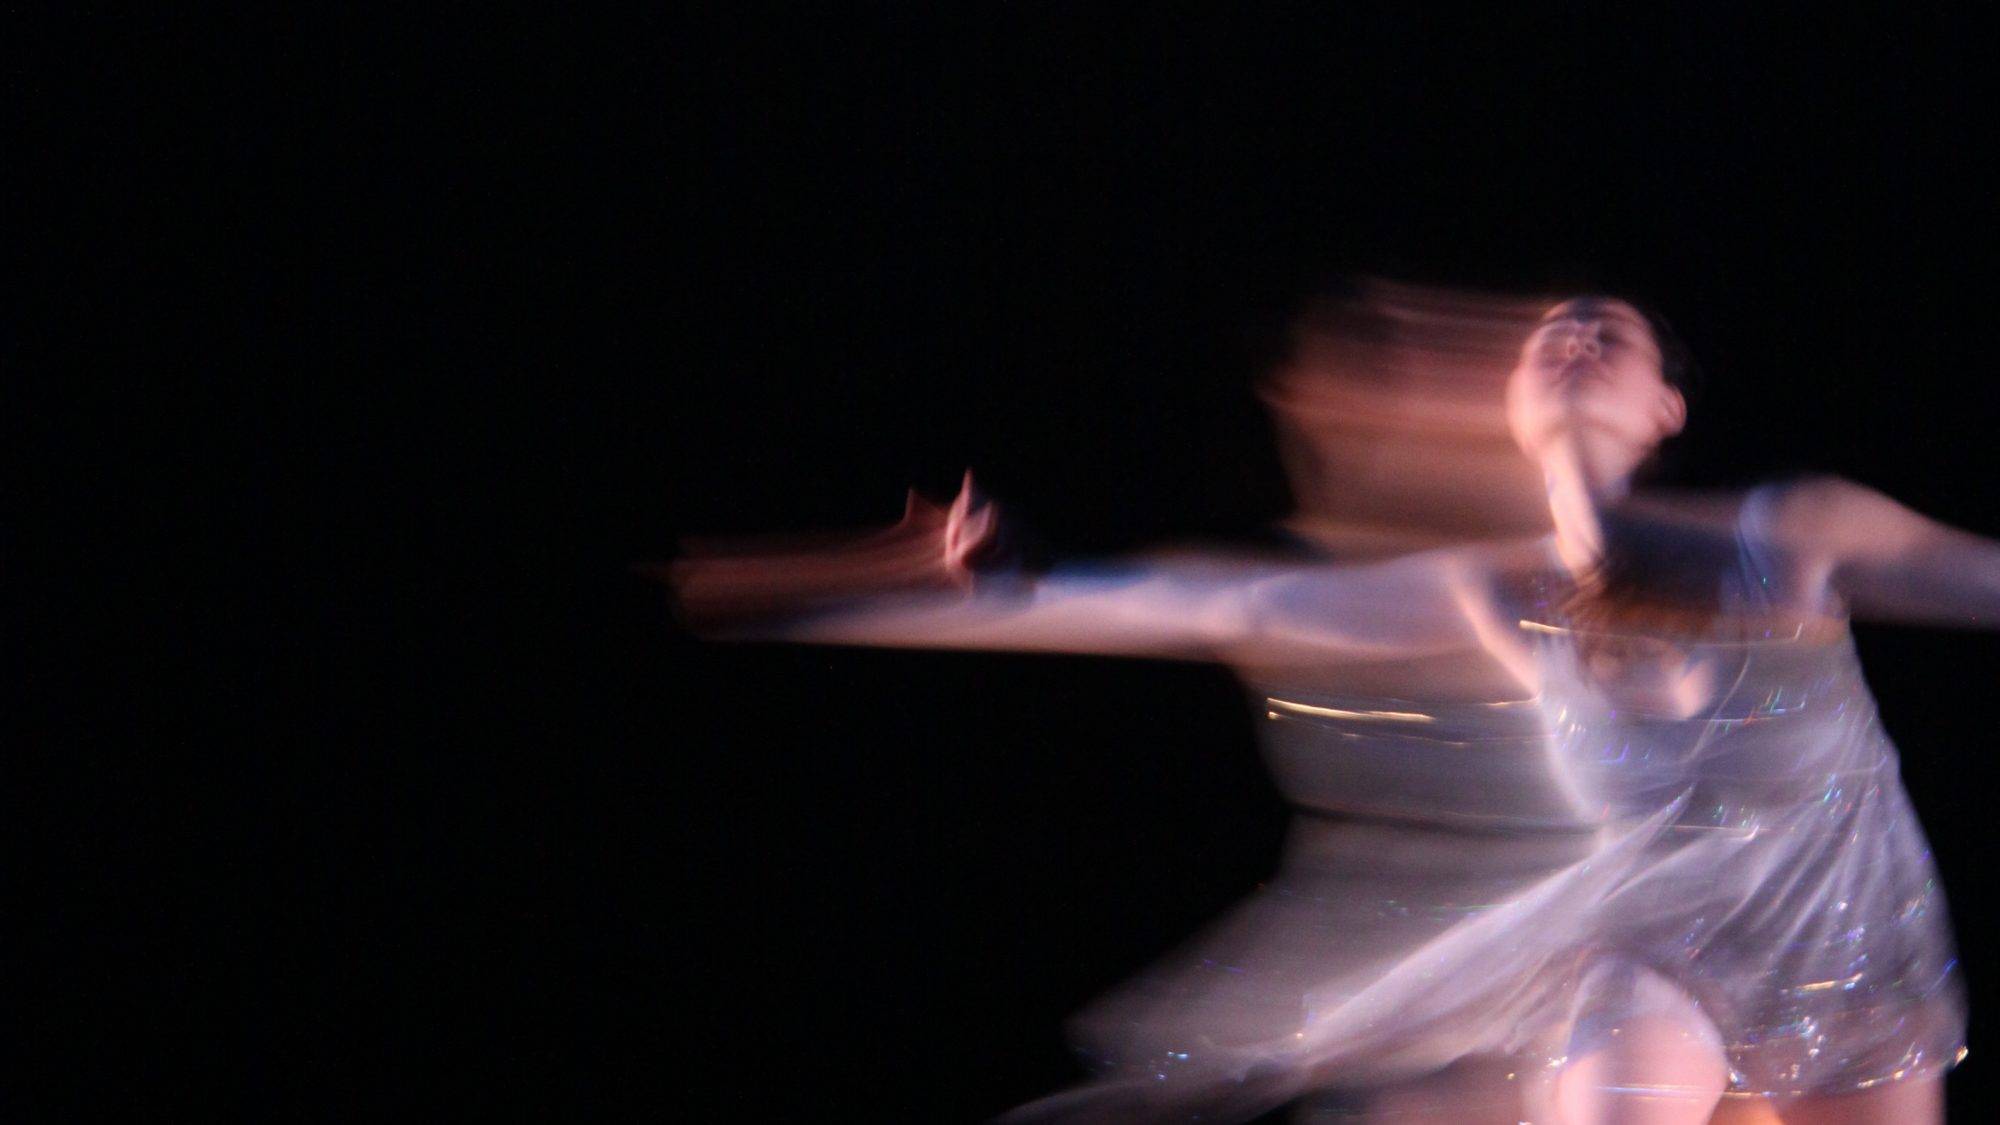 solo dancer from the GU Dance Company wears a silver sparkly leotard and spins against a black background